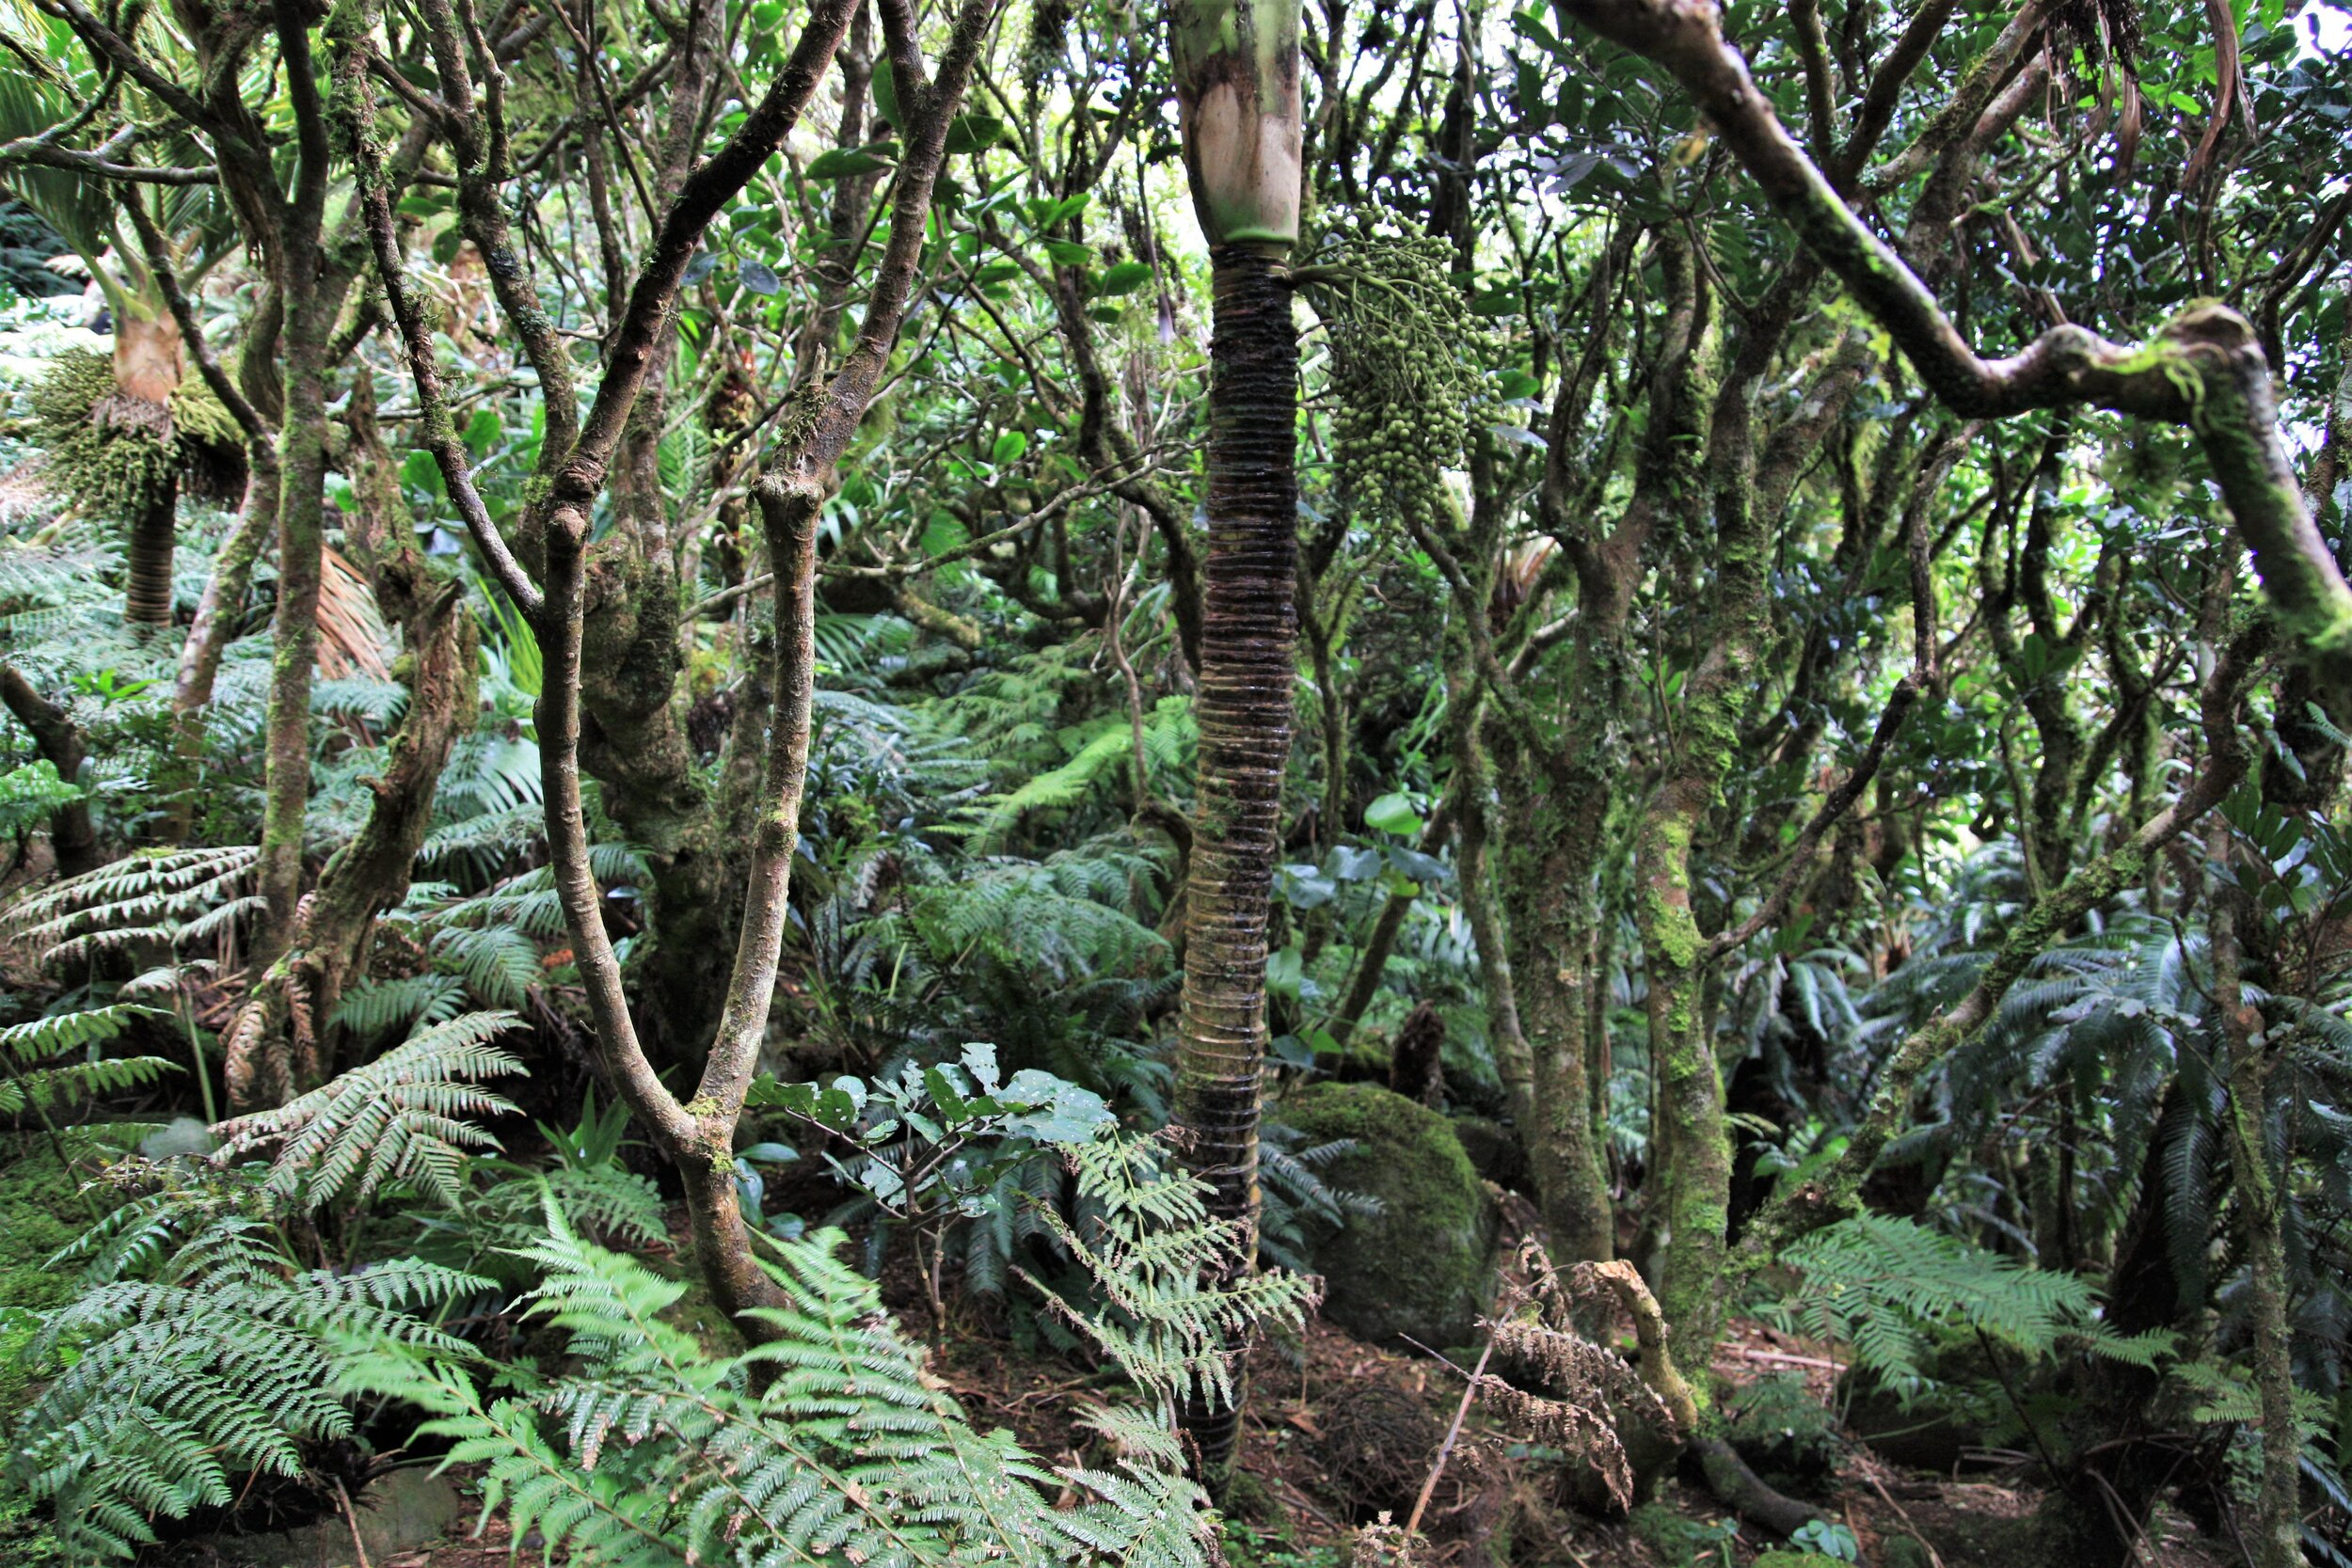 Mist forest at the top of Mt. Gower, an ecosystem unique to Lord Howe. Well-protected and mostly intact, but it won't survive a drying climate.